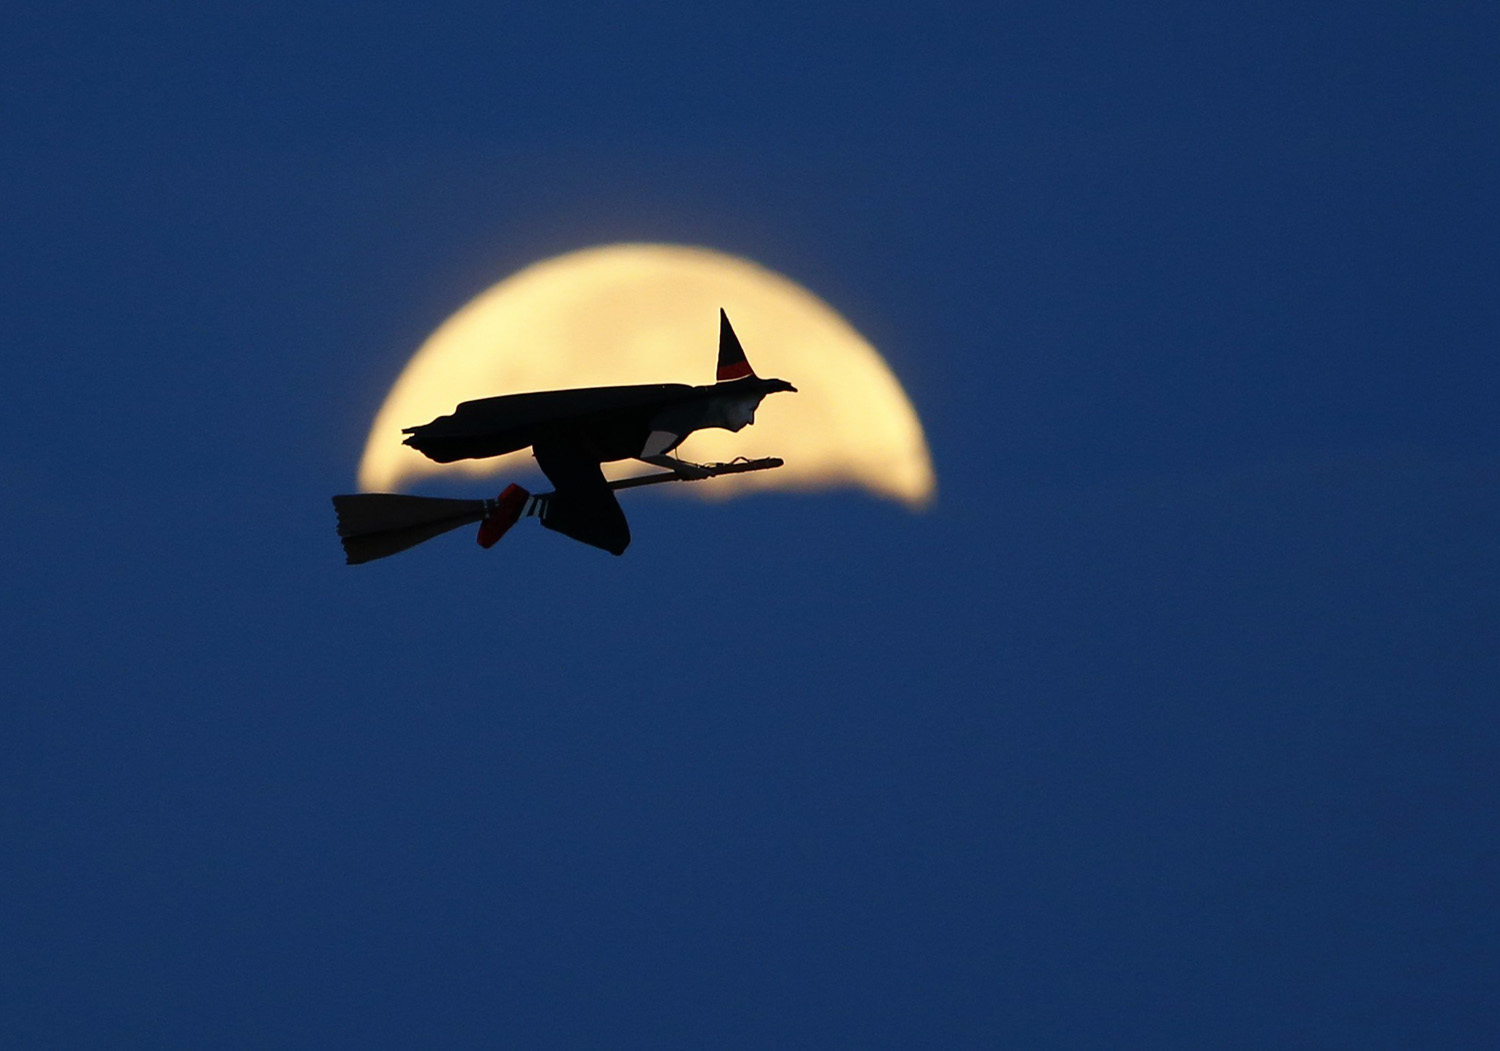 A radio-controlled flying witch makes a test flight  past a moon setting into clouds along the pacific ocean in Carlsbad, Calif. on Oct. 8, 2014.